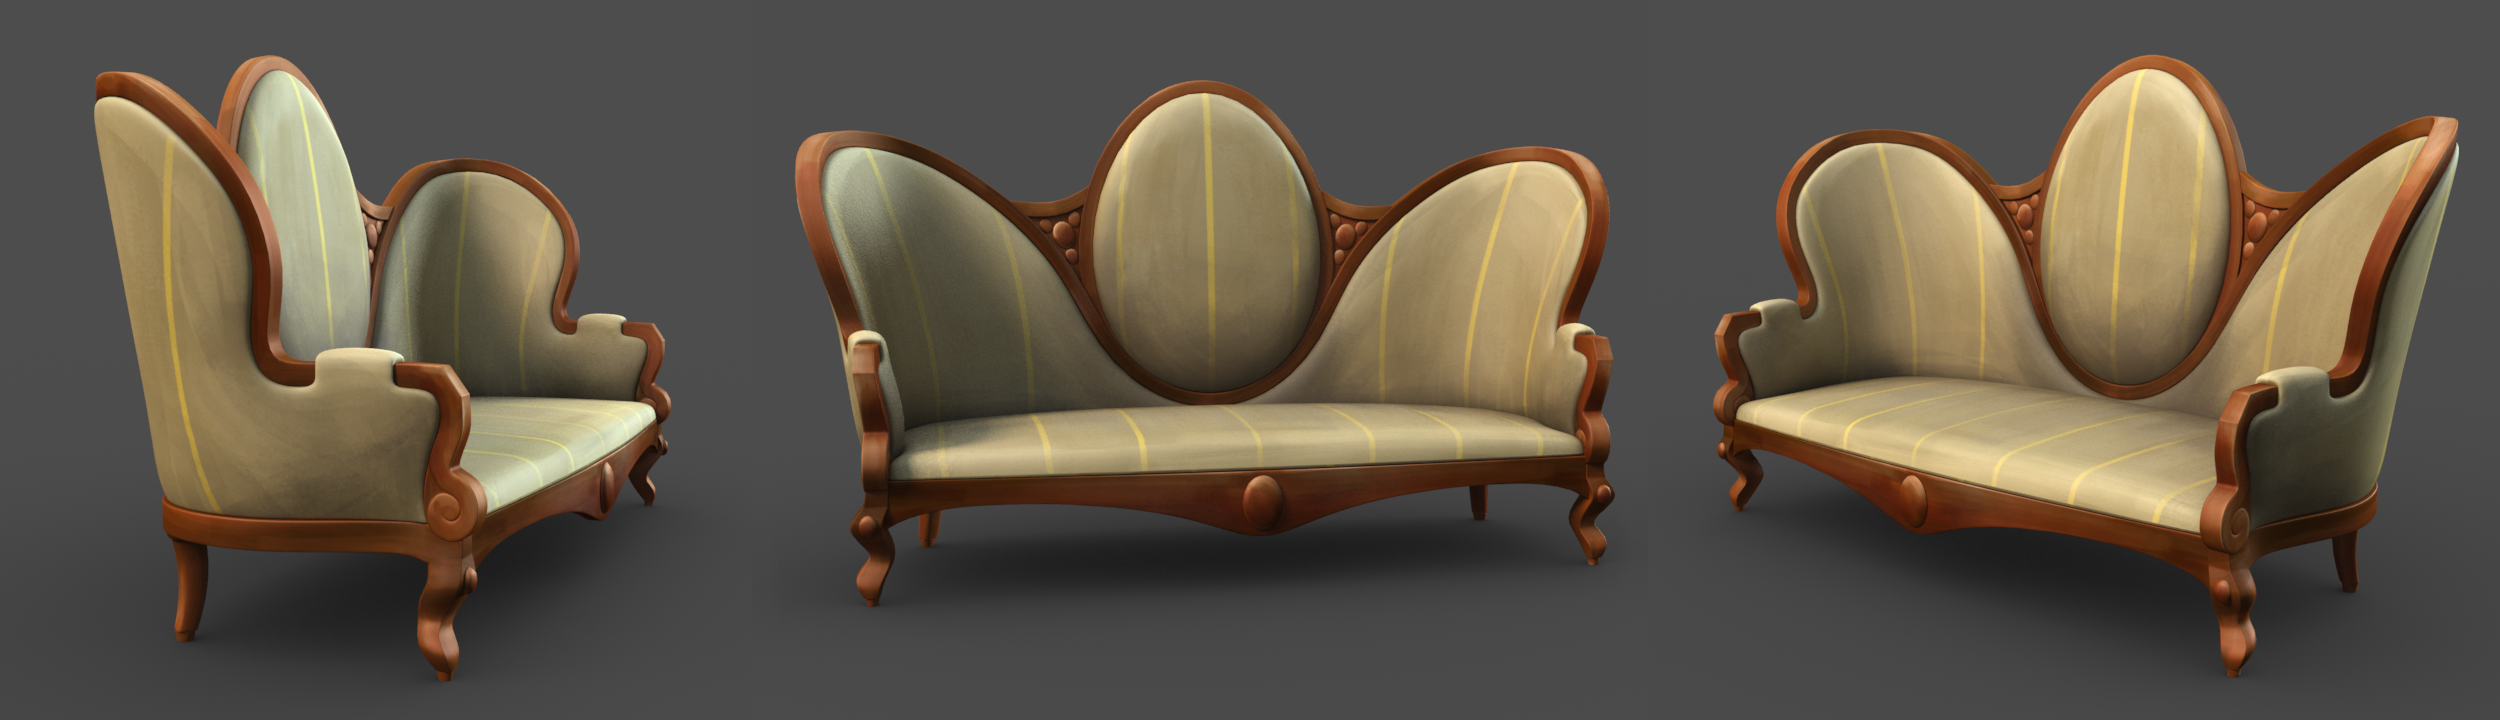 Couch Render